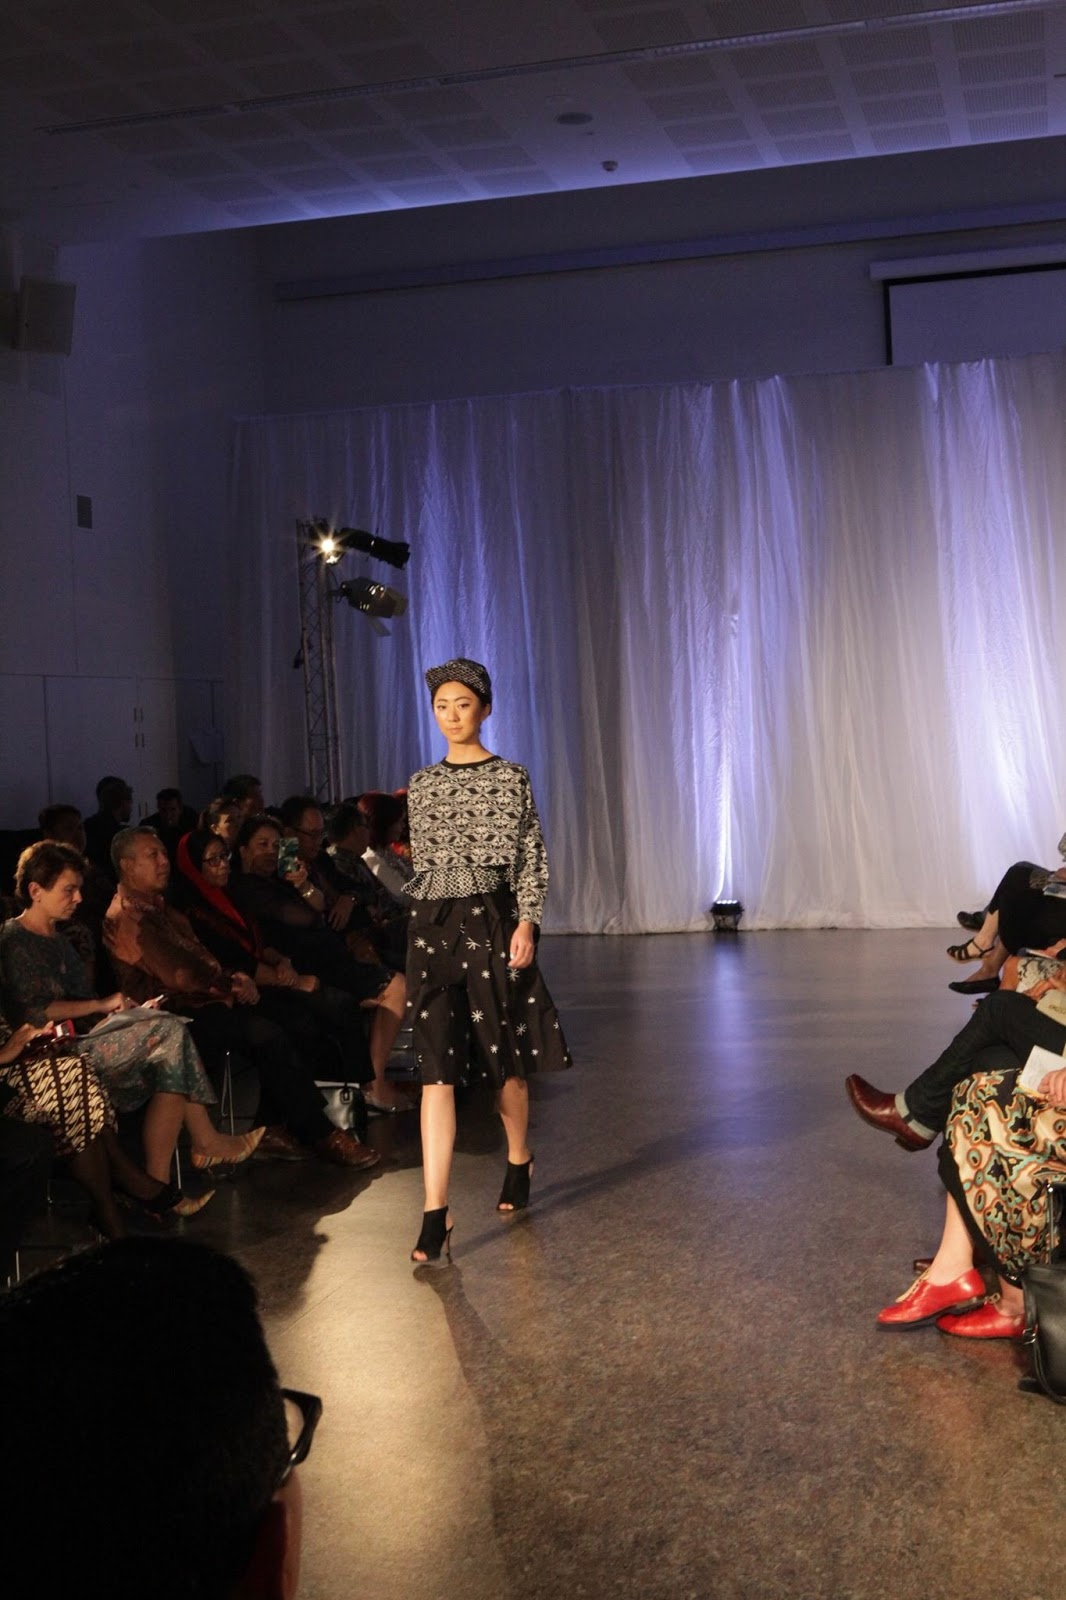 Jet's fashion diplomacy: indonesian fashion diplomacy triumphs in ...